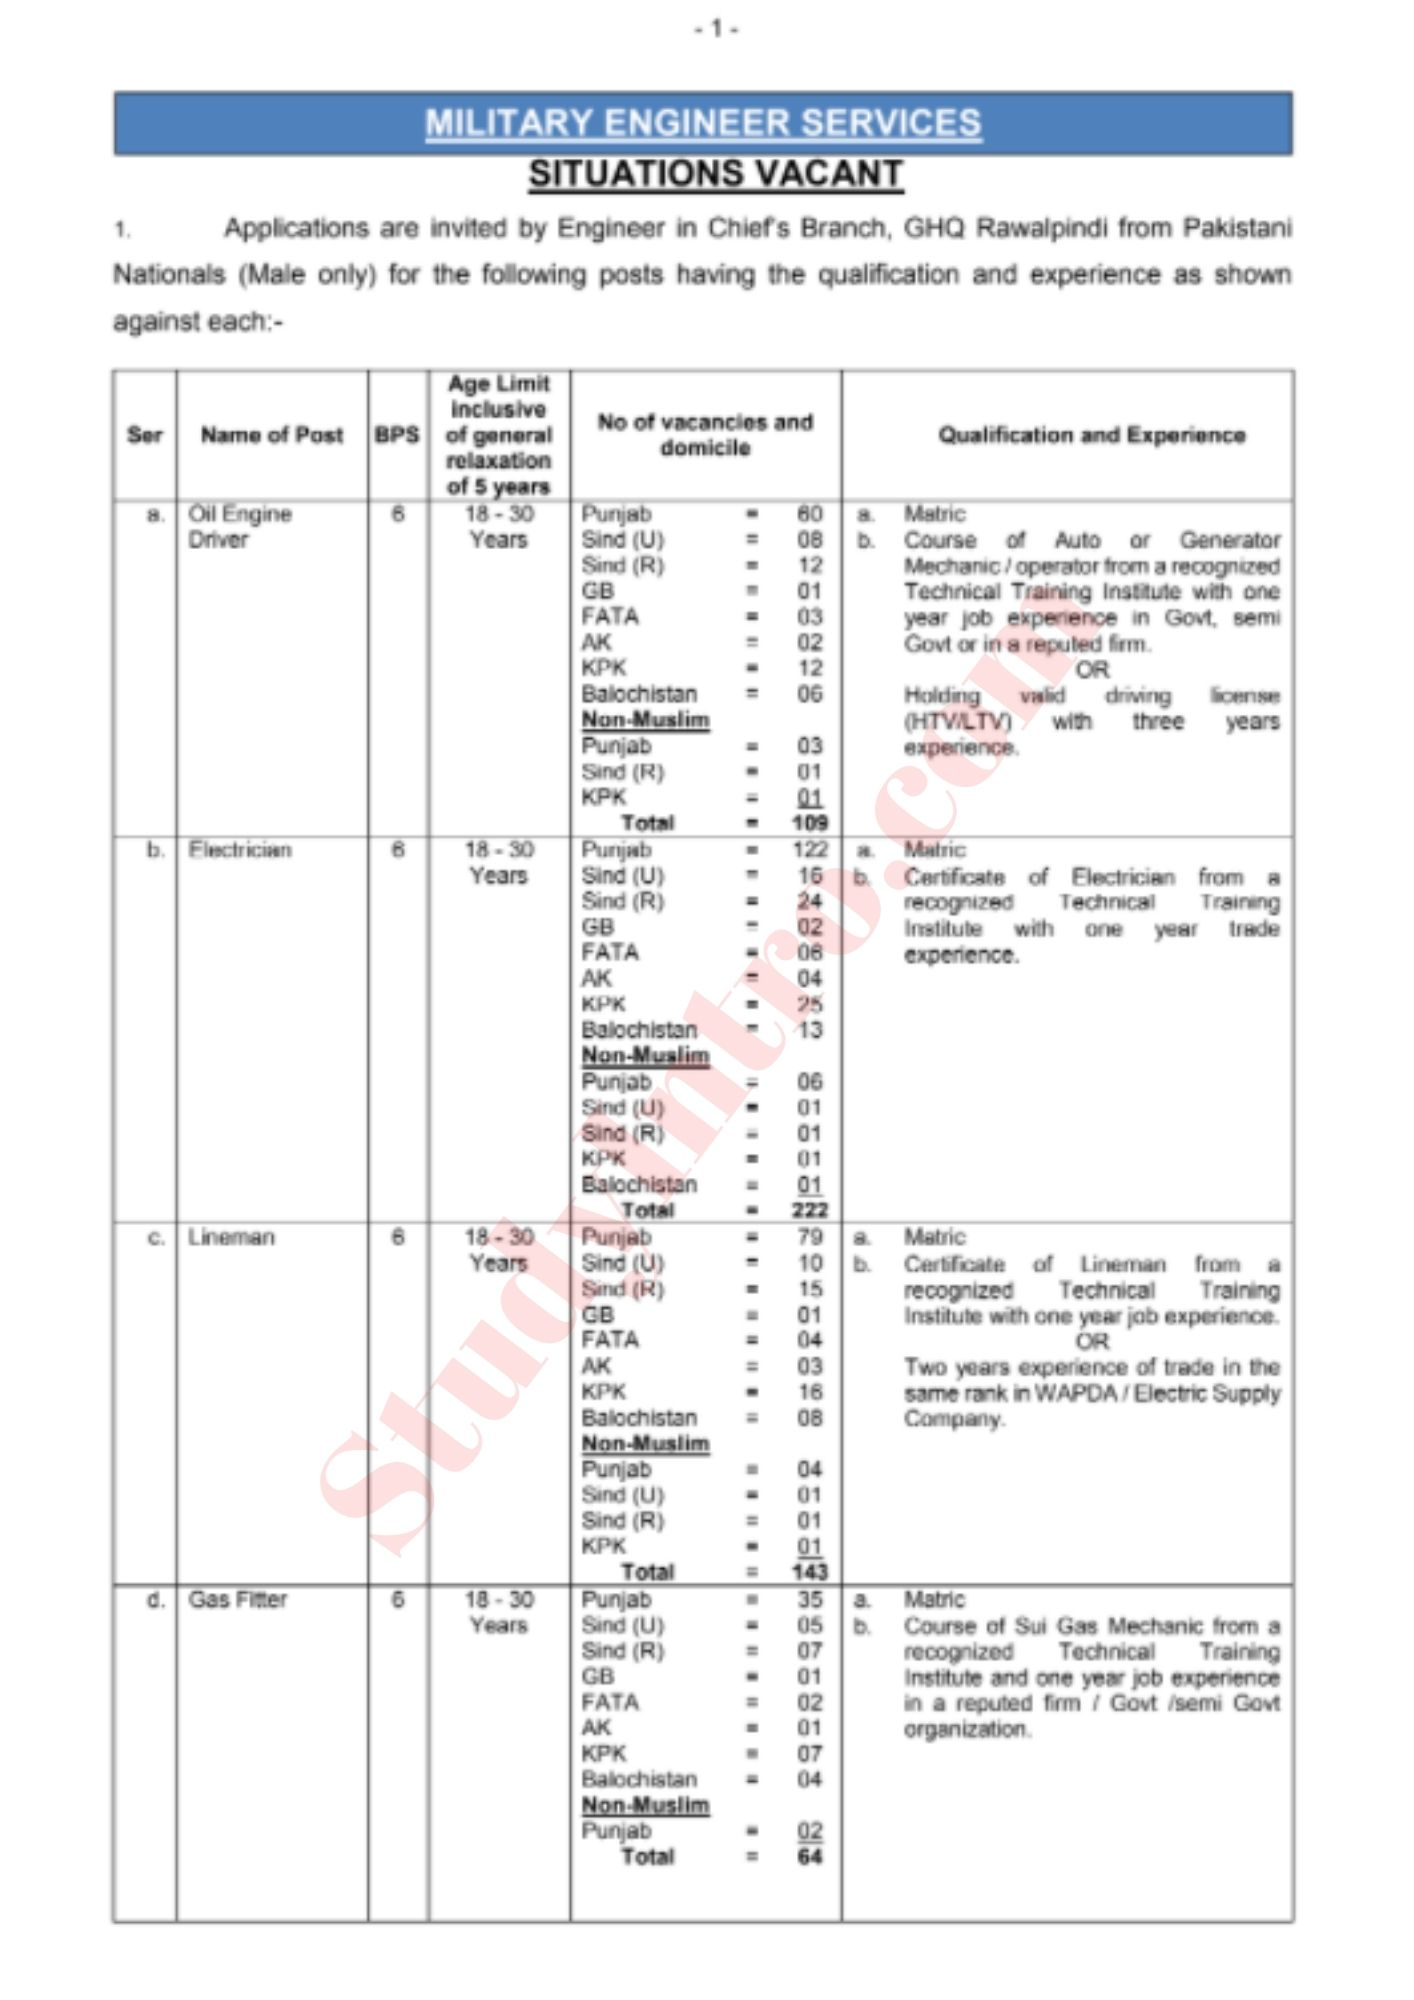 Jobs Opportunities in Military Engineer Services 2021